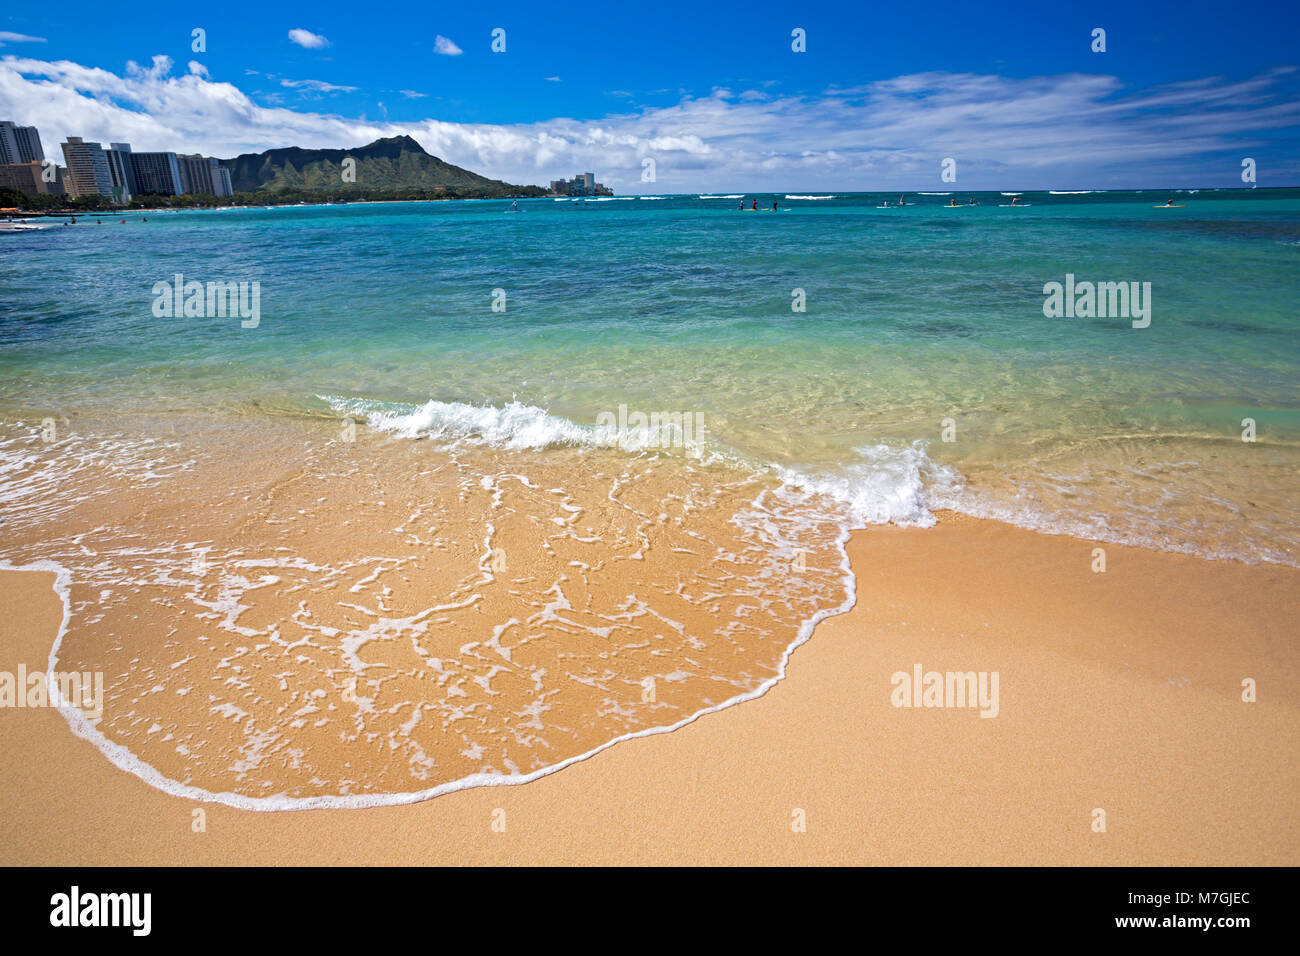 Waves wash up on Waikiki Beach with Diamond Head in the background, Oahu, Hawaii. - Stock Image